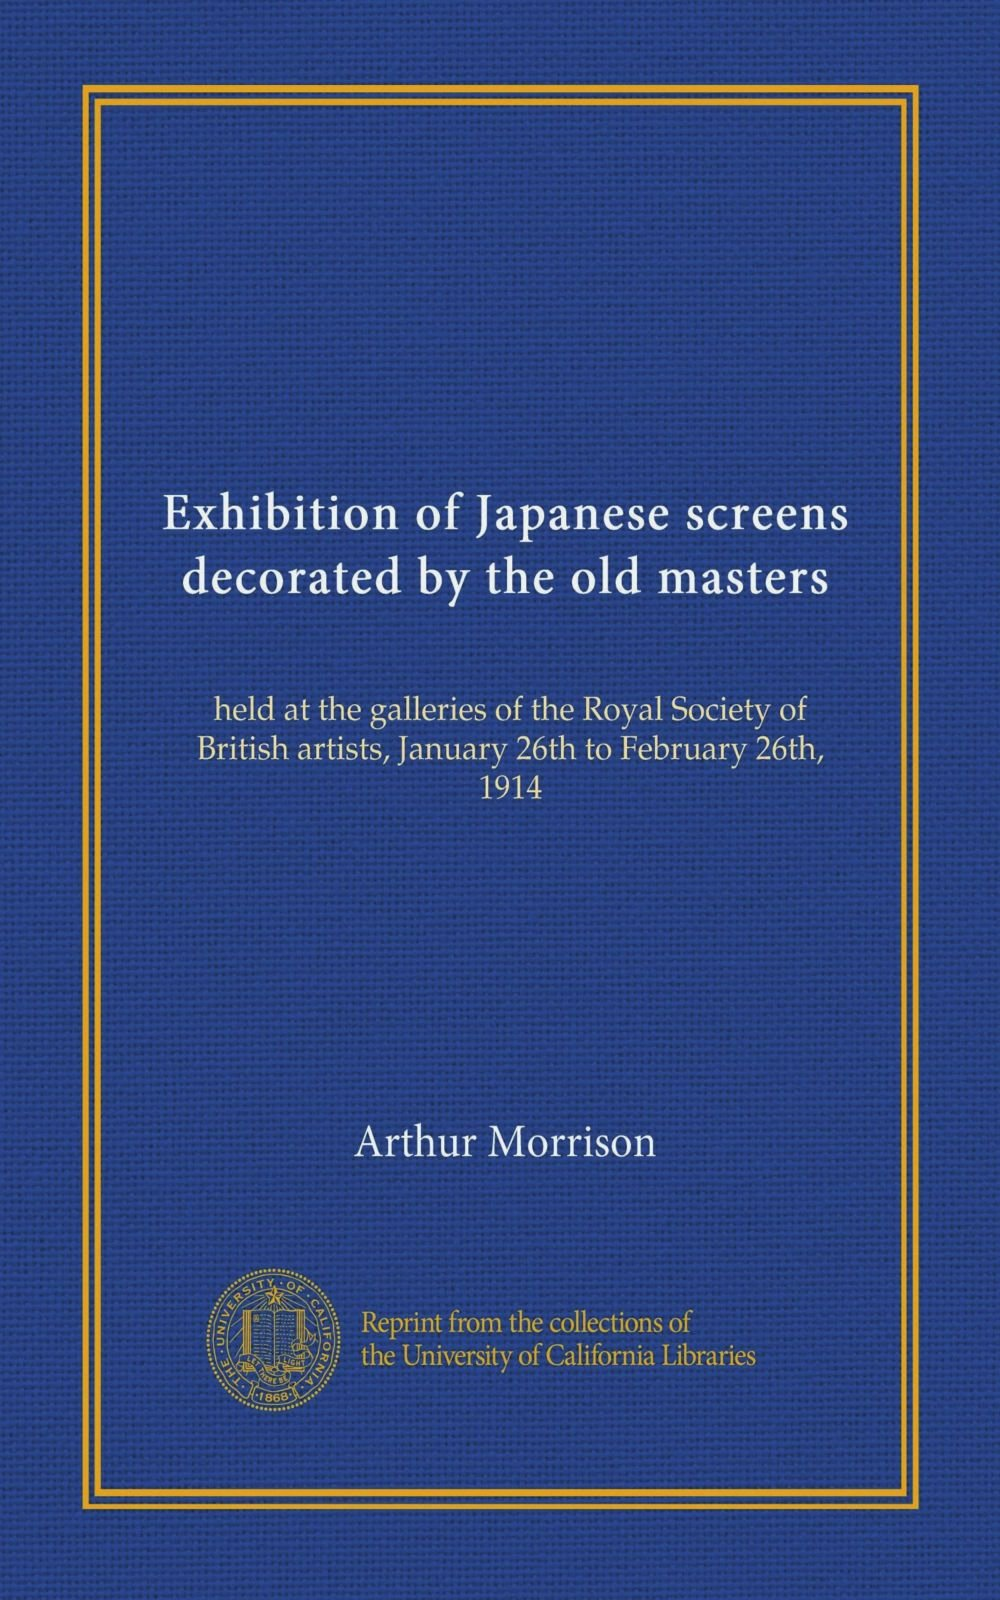 Read Online Exhibition of Japanese screens decorated by the old masters: held at the galleries of the Royal Society of British artists, January 26th to February 26th, 1914 ebook